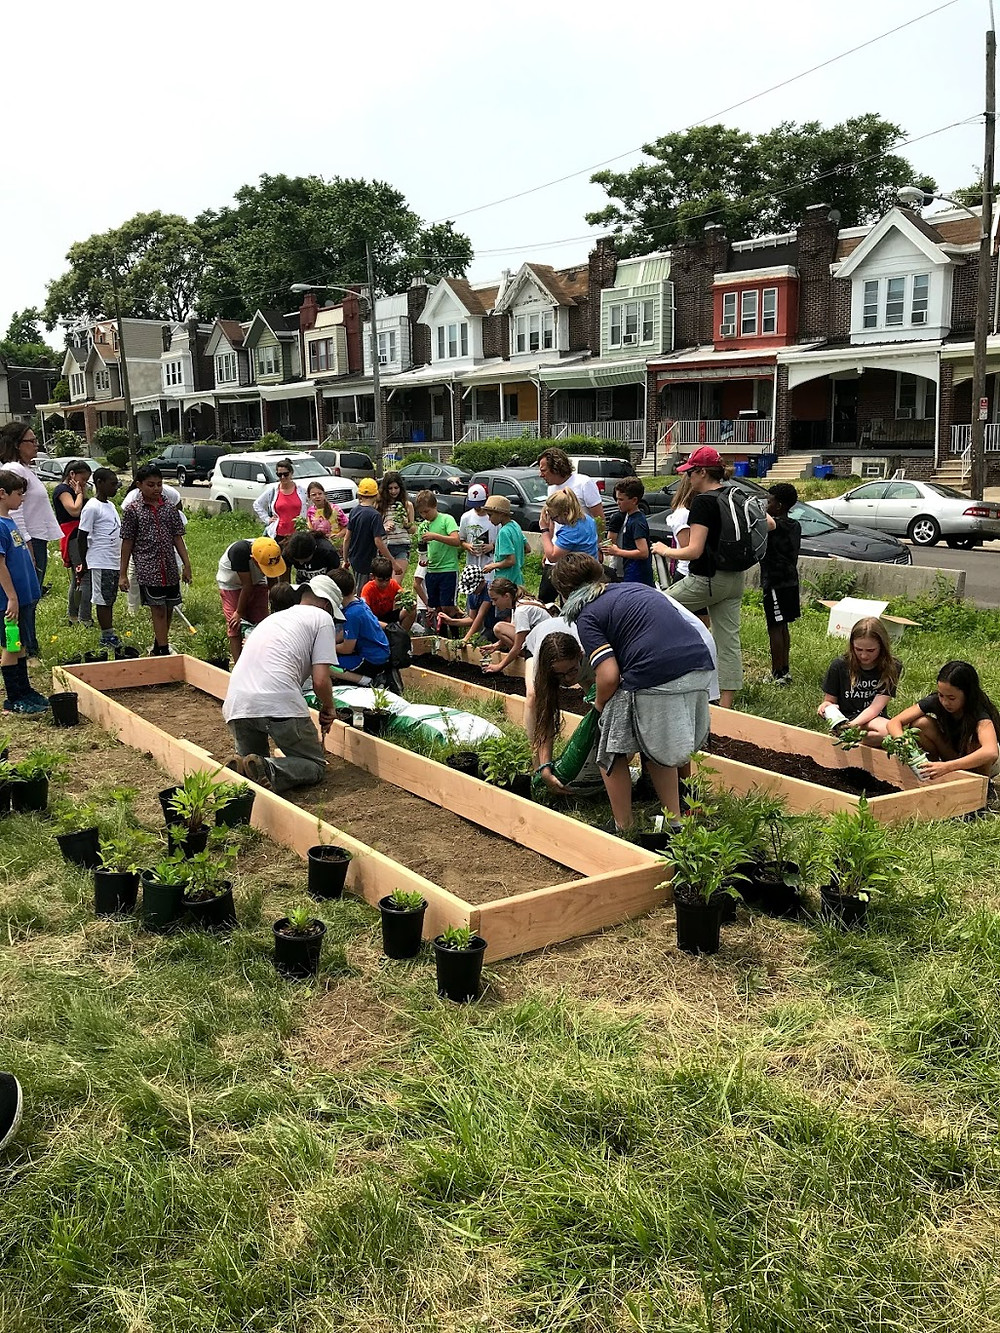 LandHealth Institute staff and schoolchildren from Friends Select gardening together.